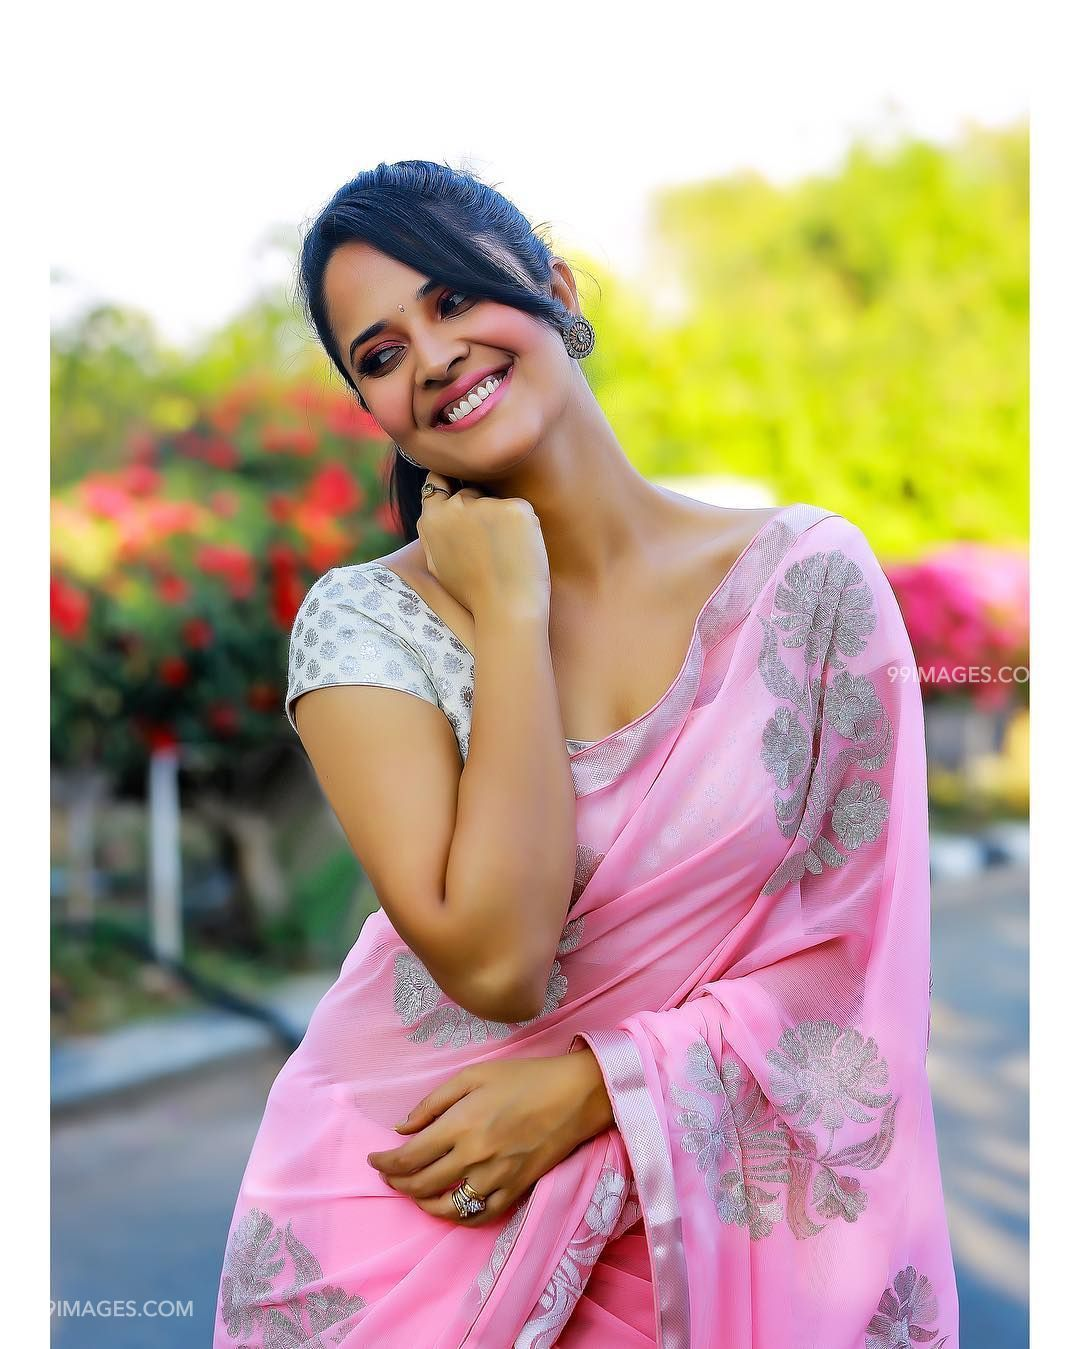 Anasuya Bharadwaj Beautiful HD Photos & Mobile Wallpapers HD (Android/iPhone) (1080p) (31476) - Anasuya Bharadwaj